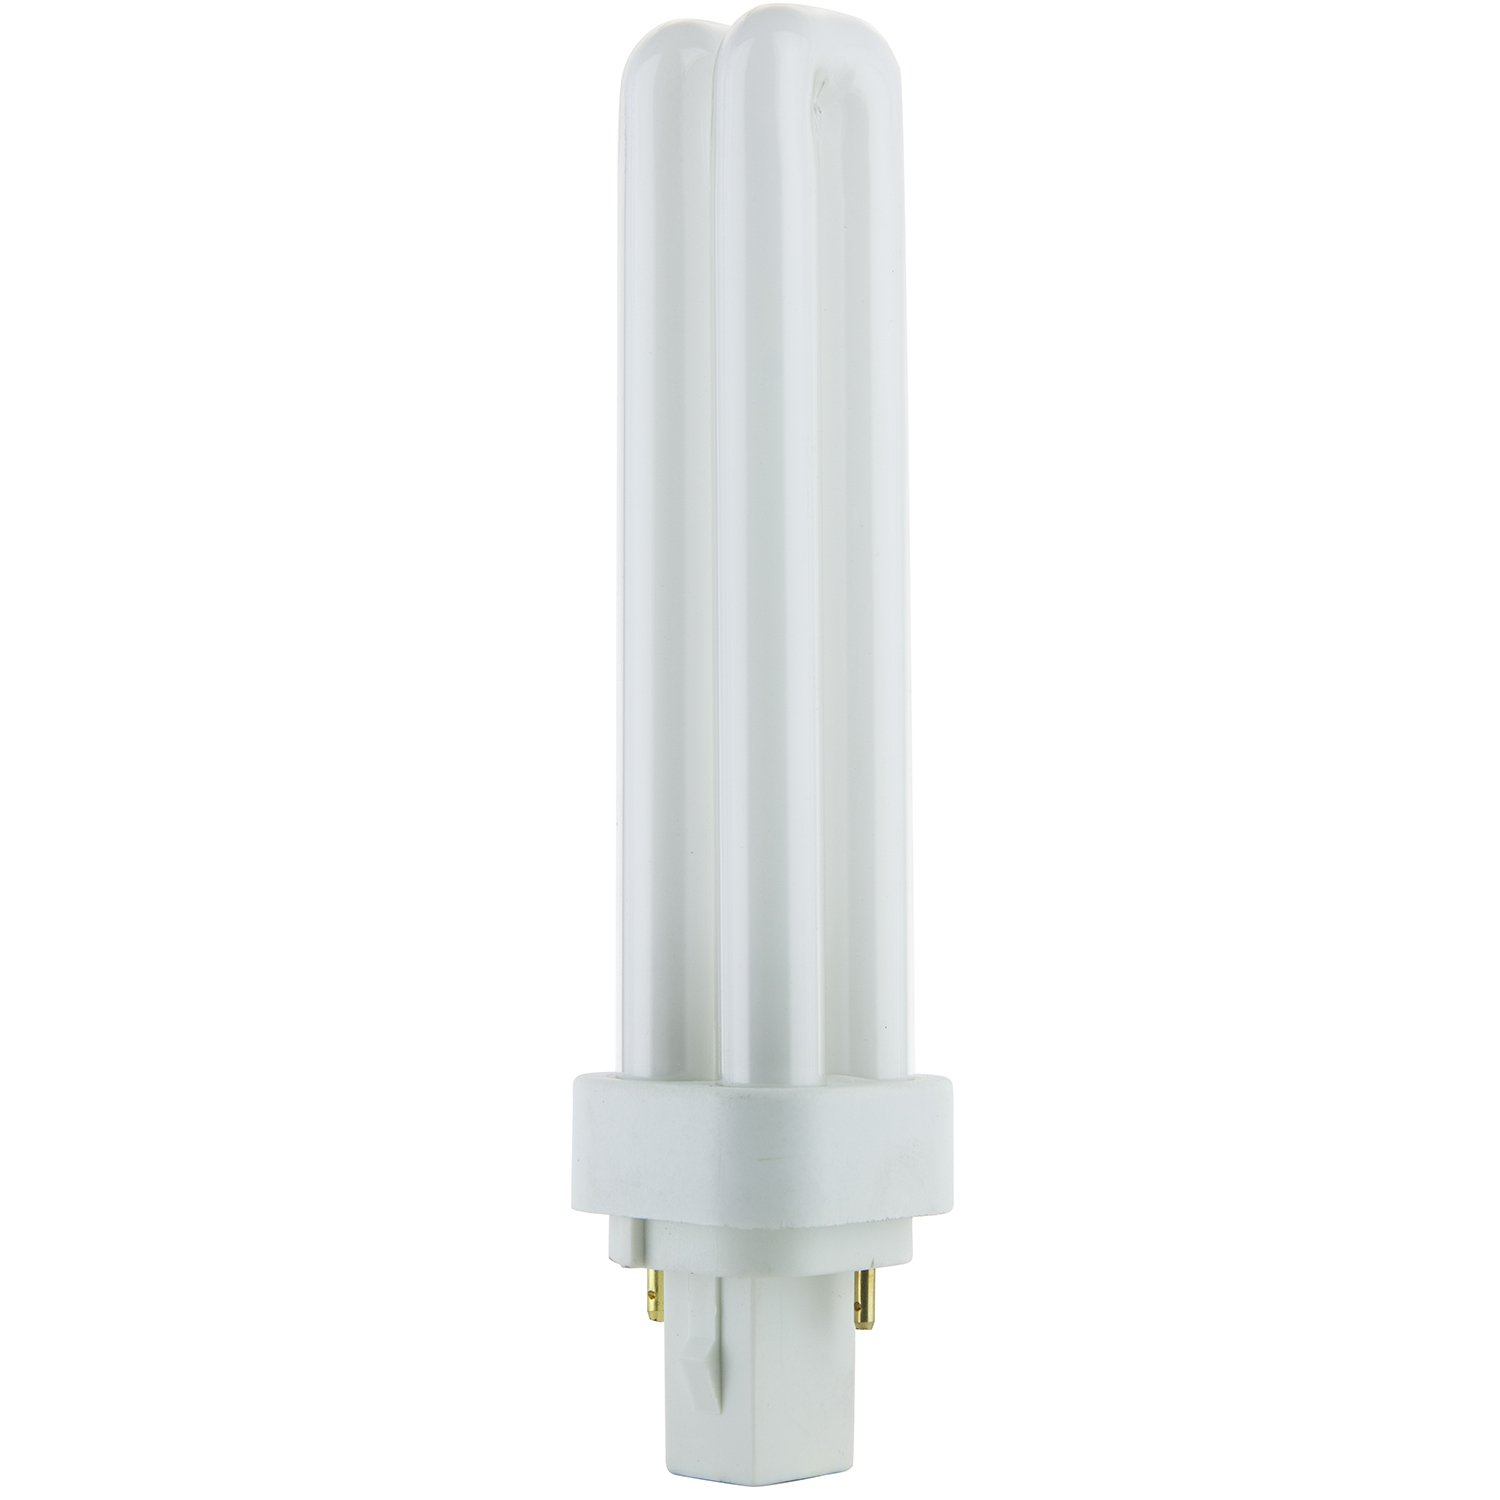 Sunlite PLD18//SP27K//10PK 2700K Warm White Fluorescent 18W PLD Double U-Shaped Twin Tube CFL Bulbs with 2-Pin G24D-2 Base 10 Pack